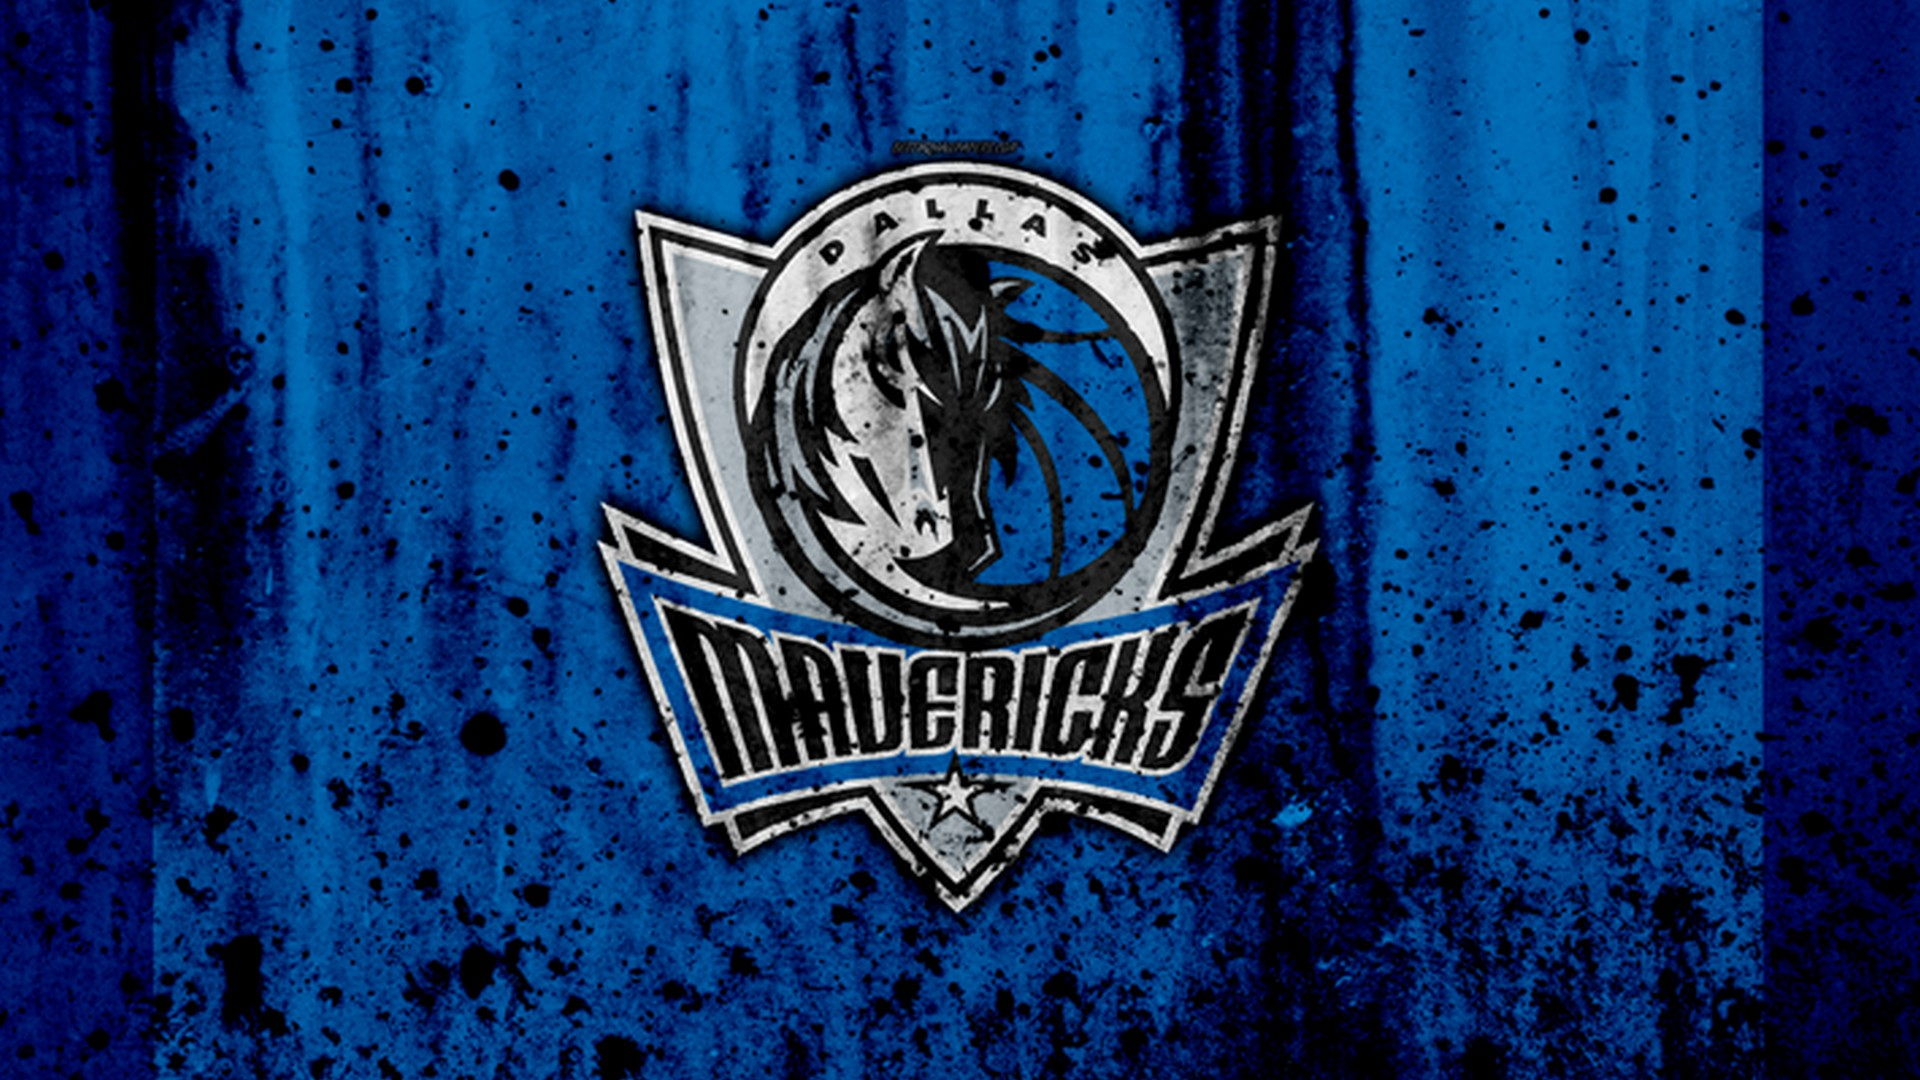 HD Desktop Wallpaper Dallas Mavericks with high-resolution 1920x1080 pixel. You can use this wallpaper for your Desktop Computer Backgrounds, Windows or Mac Screensavers, iPhone Lock screen, Tablet or Android and another Mobile Phone device